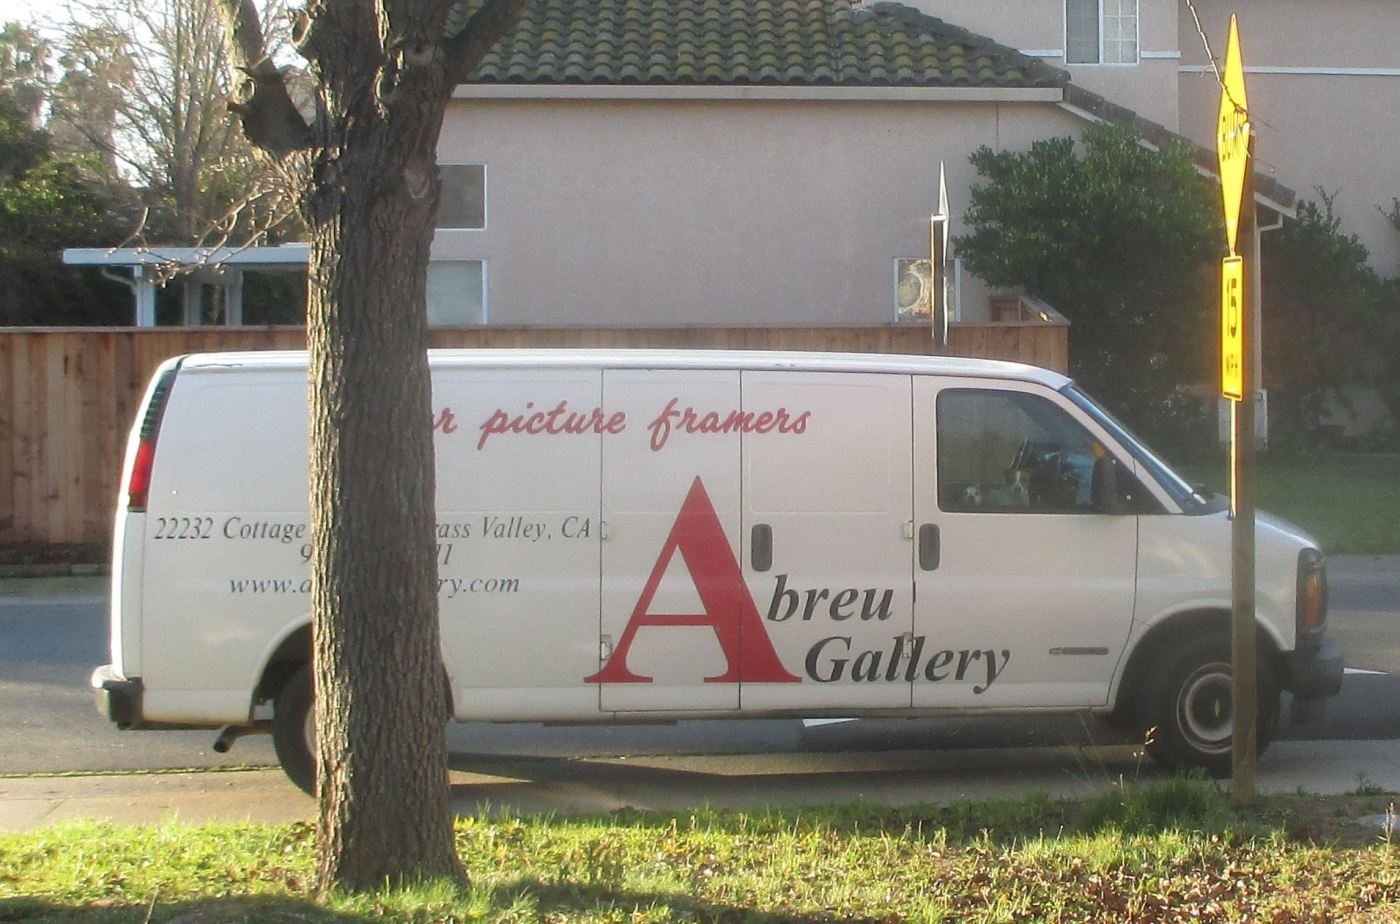 The Abreu Gallery Van